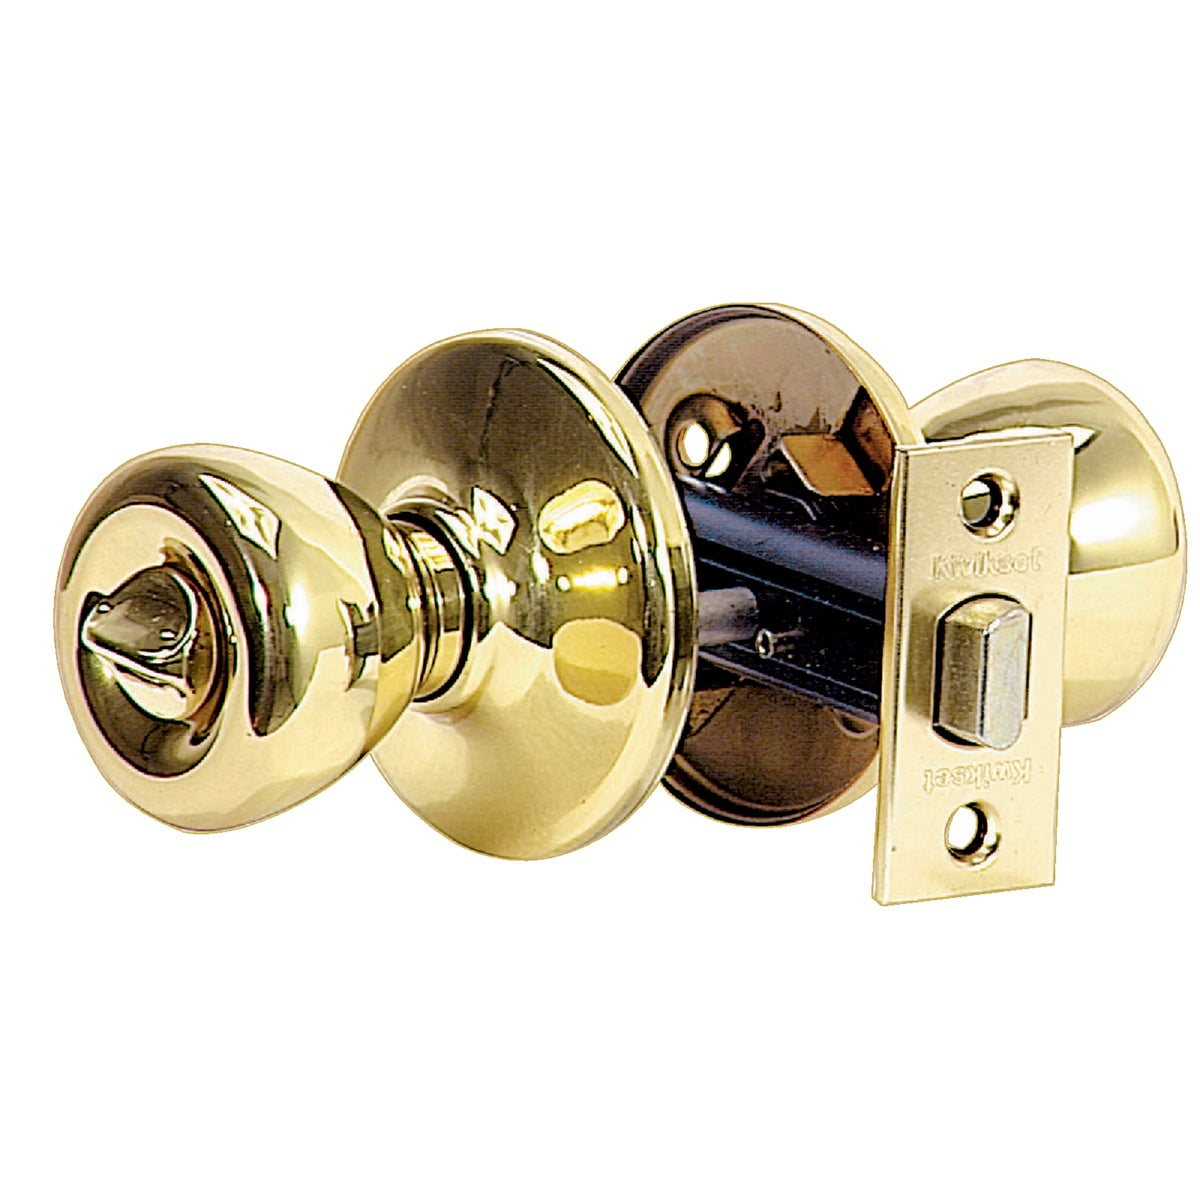 PB BX TYLO PRIVACY LOCK - 300T 3 by Kwikset